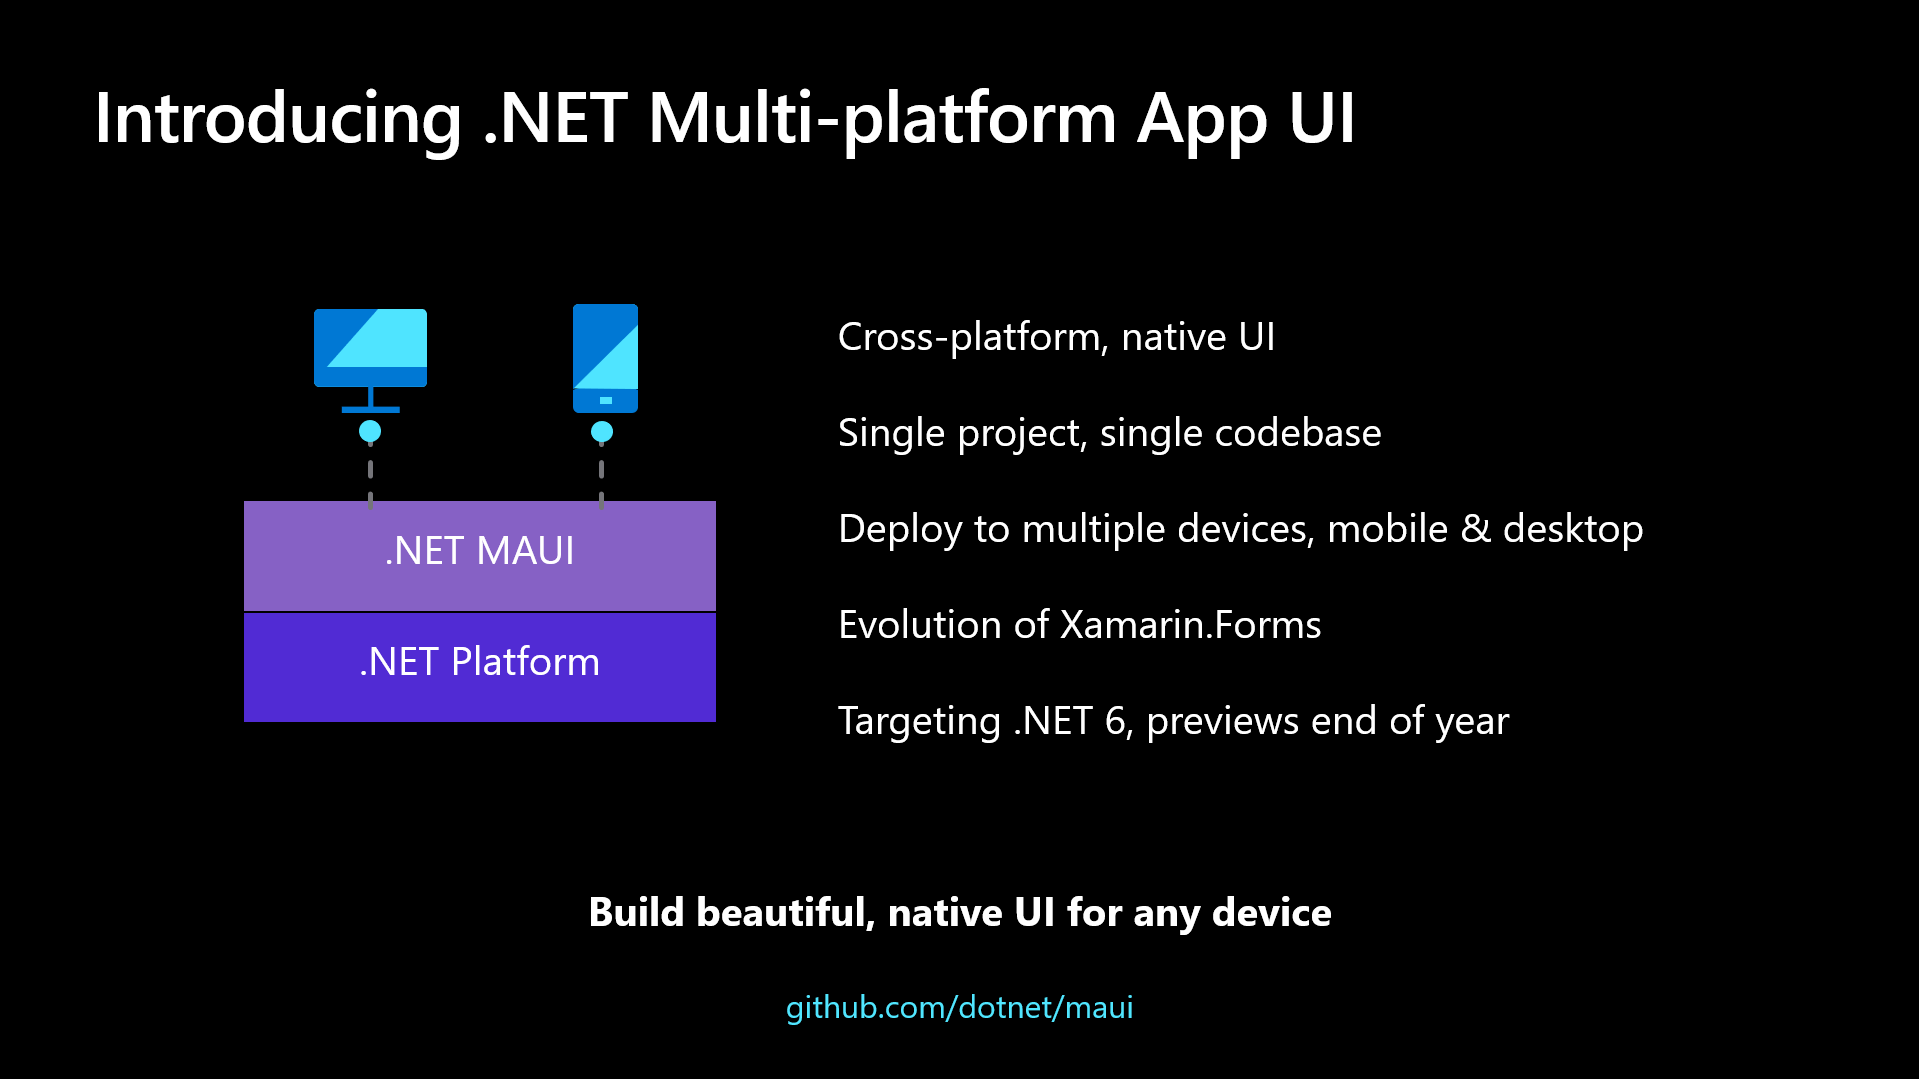 .NET Multi-platform App UI Overview